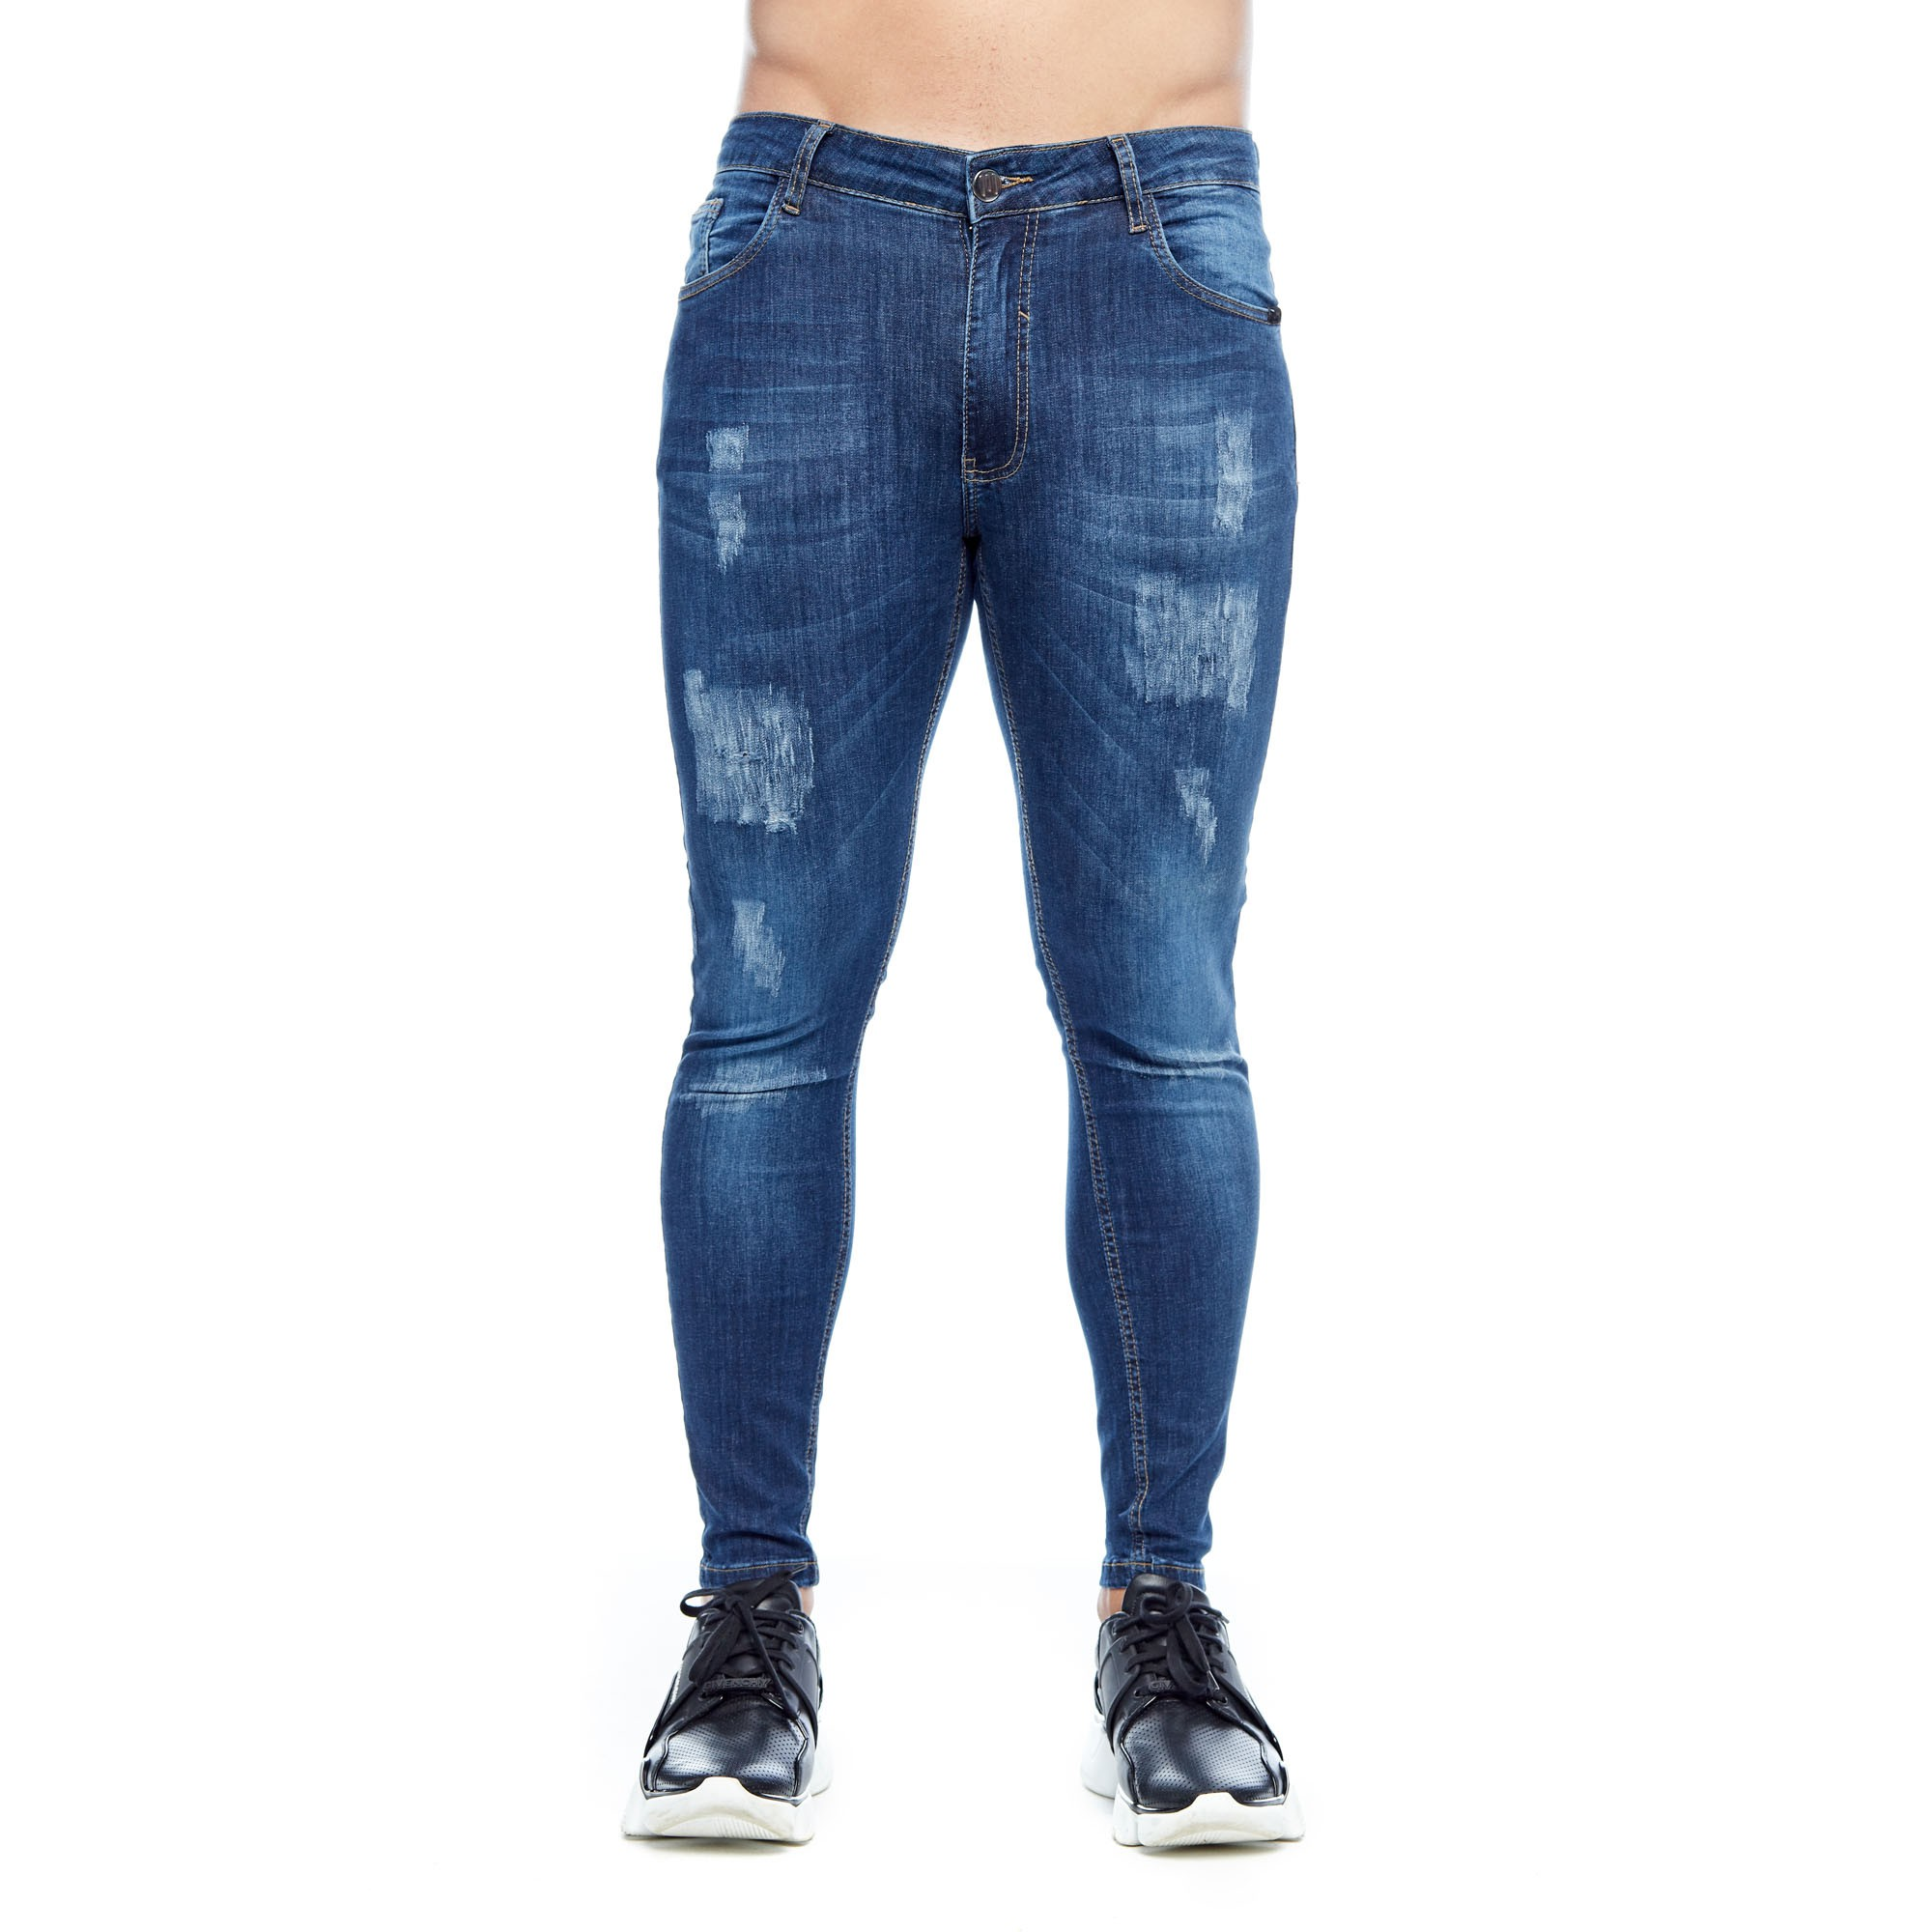 Calça Jeans Evolvee Super Body Skinny